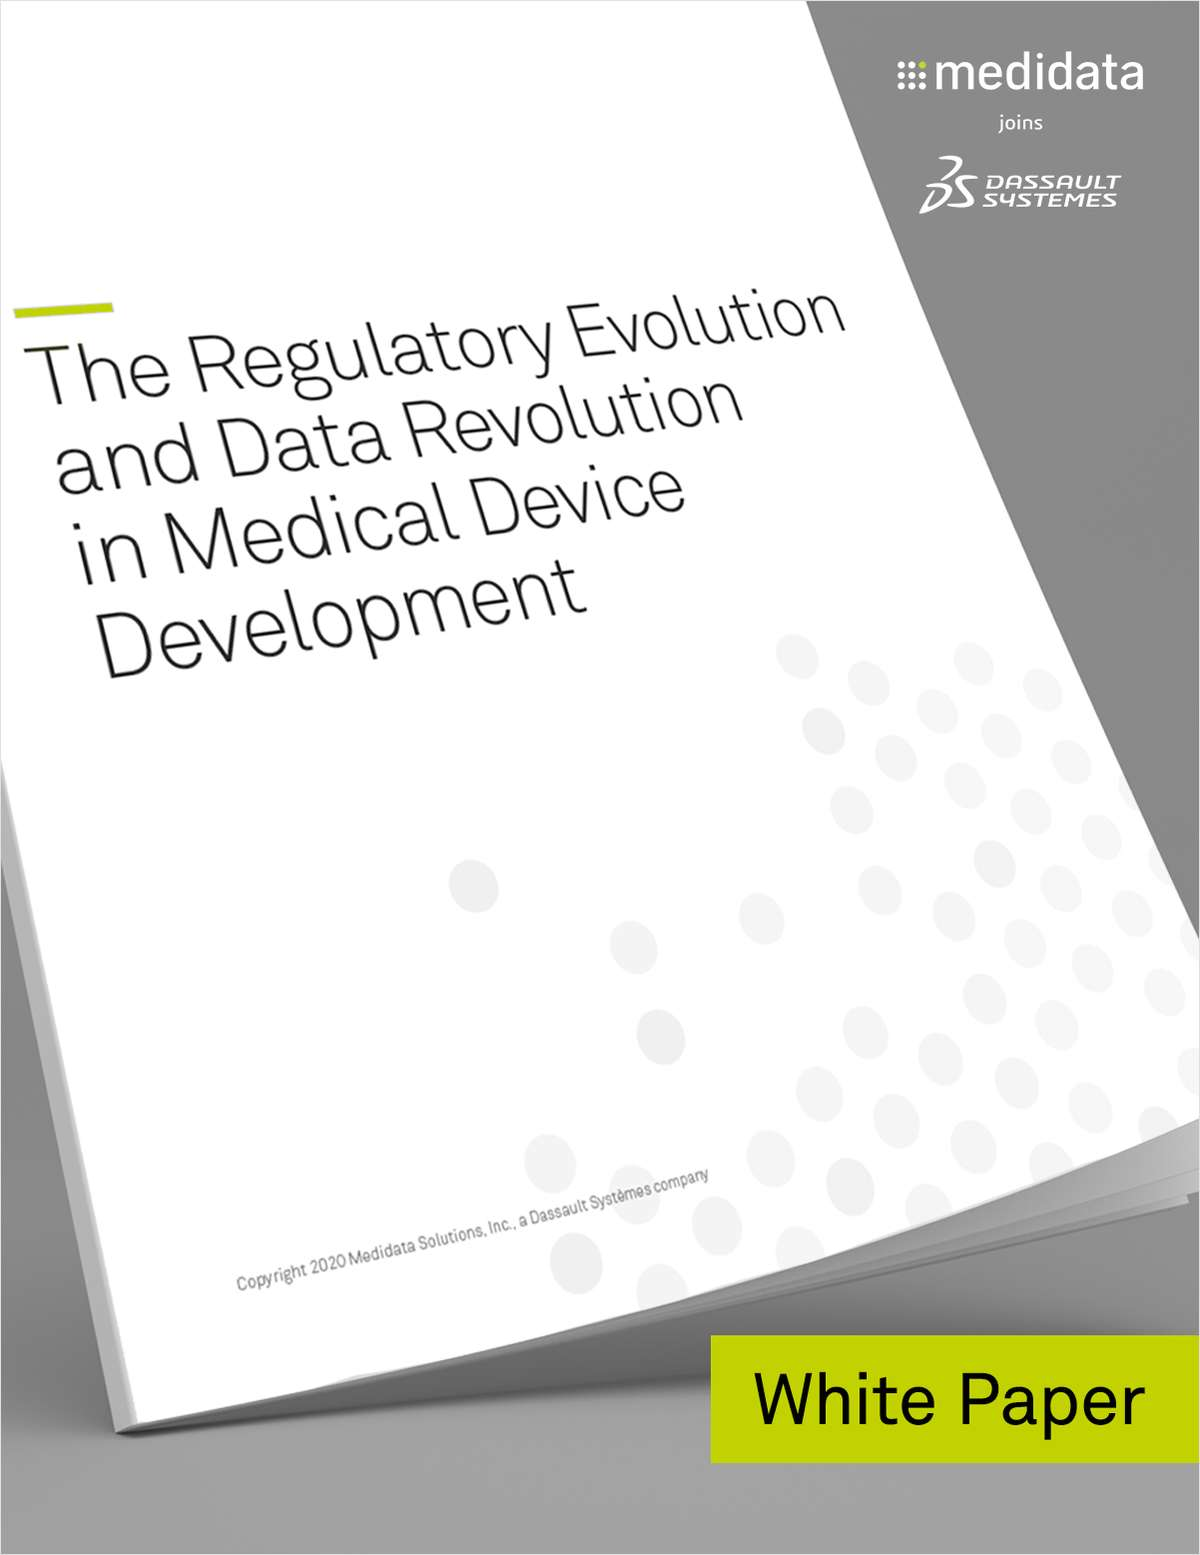 The Regulatory Evolution and Data Revolution in Medical Device Development